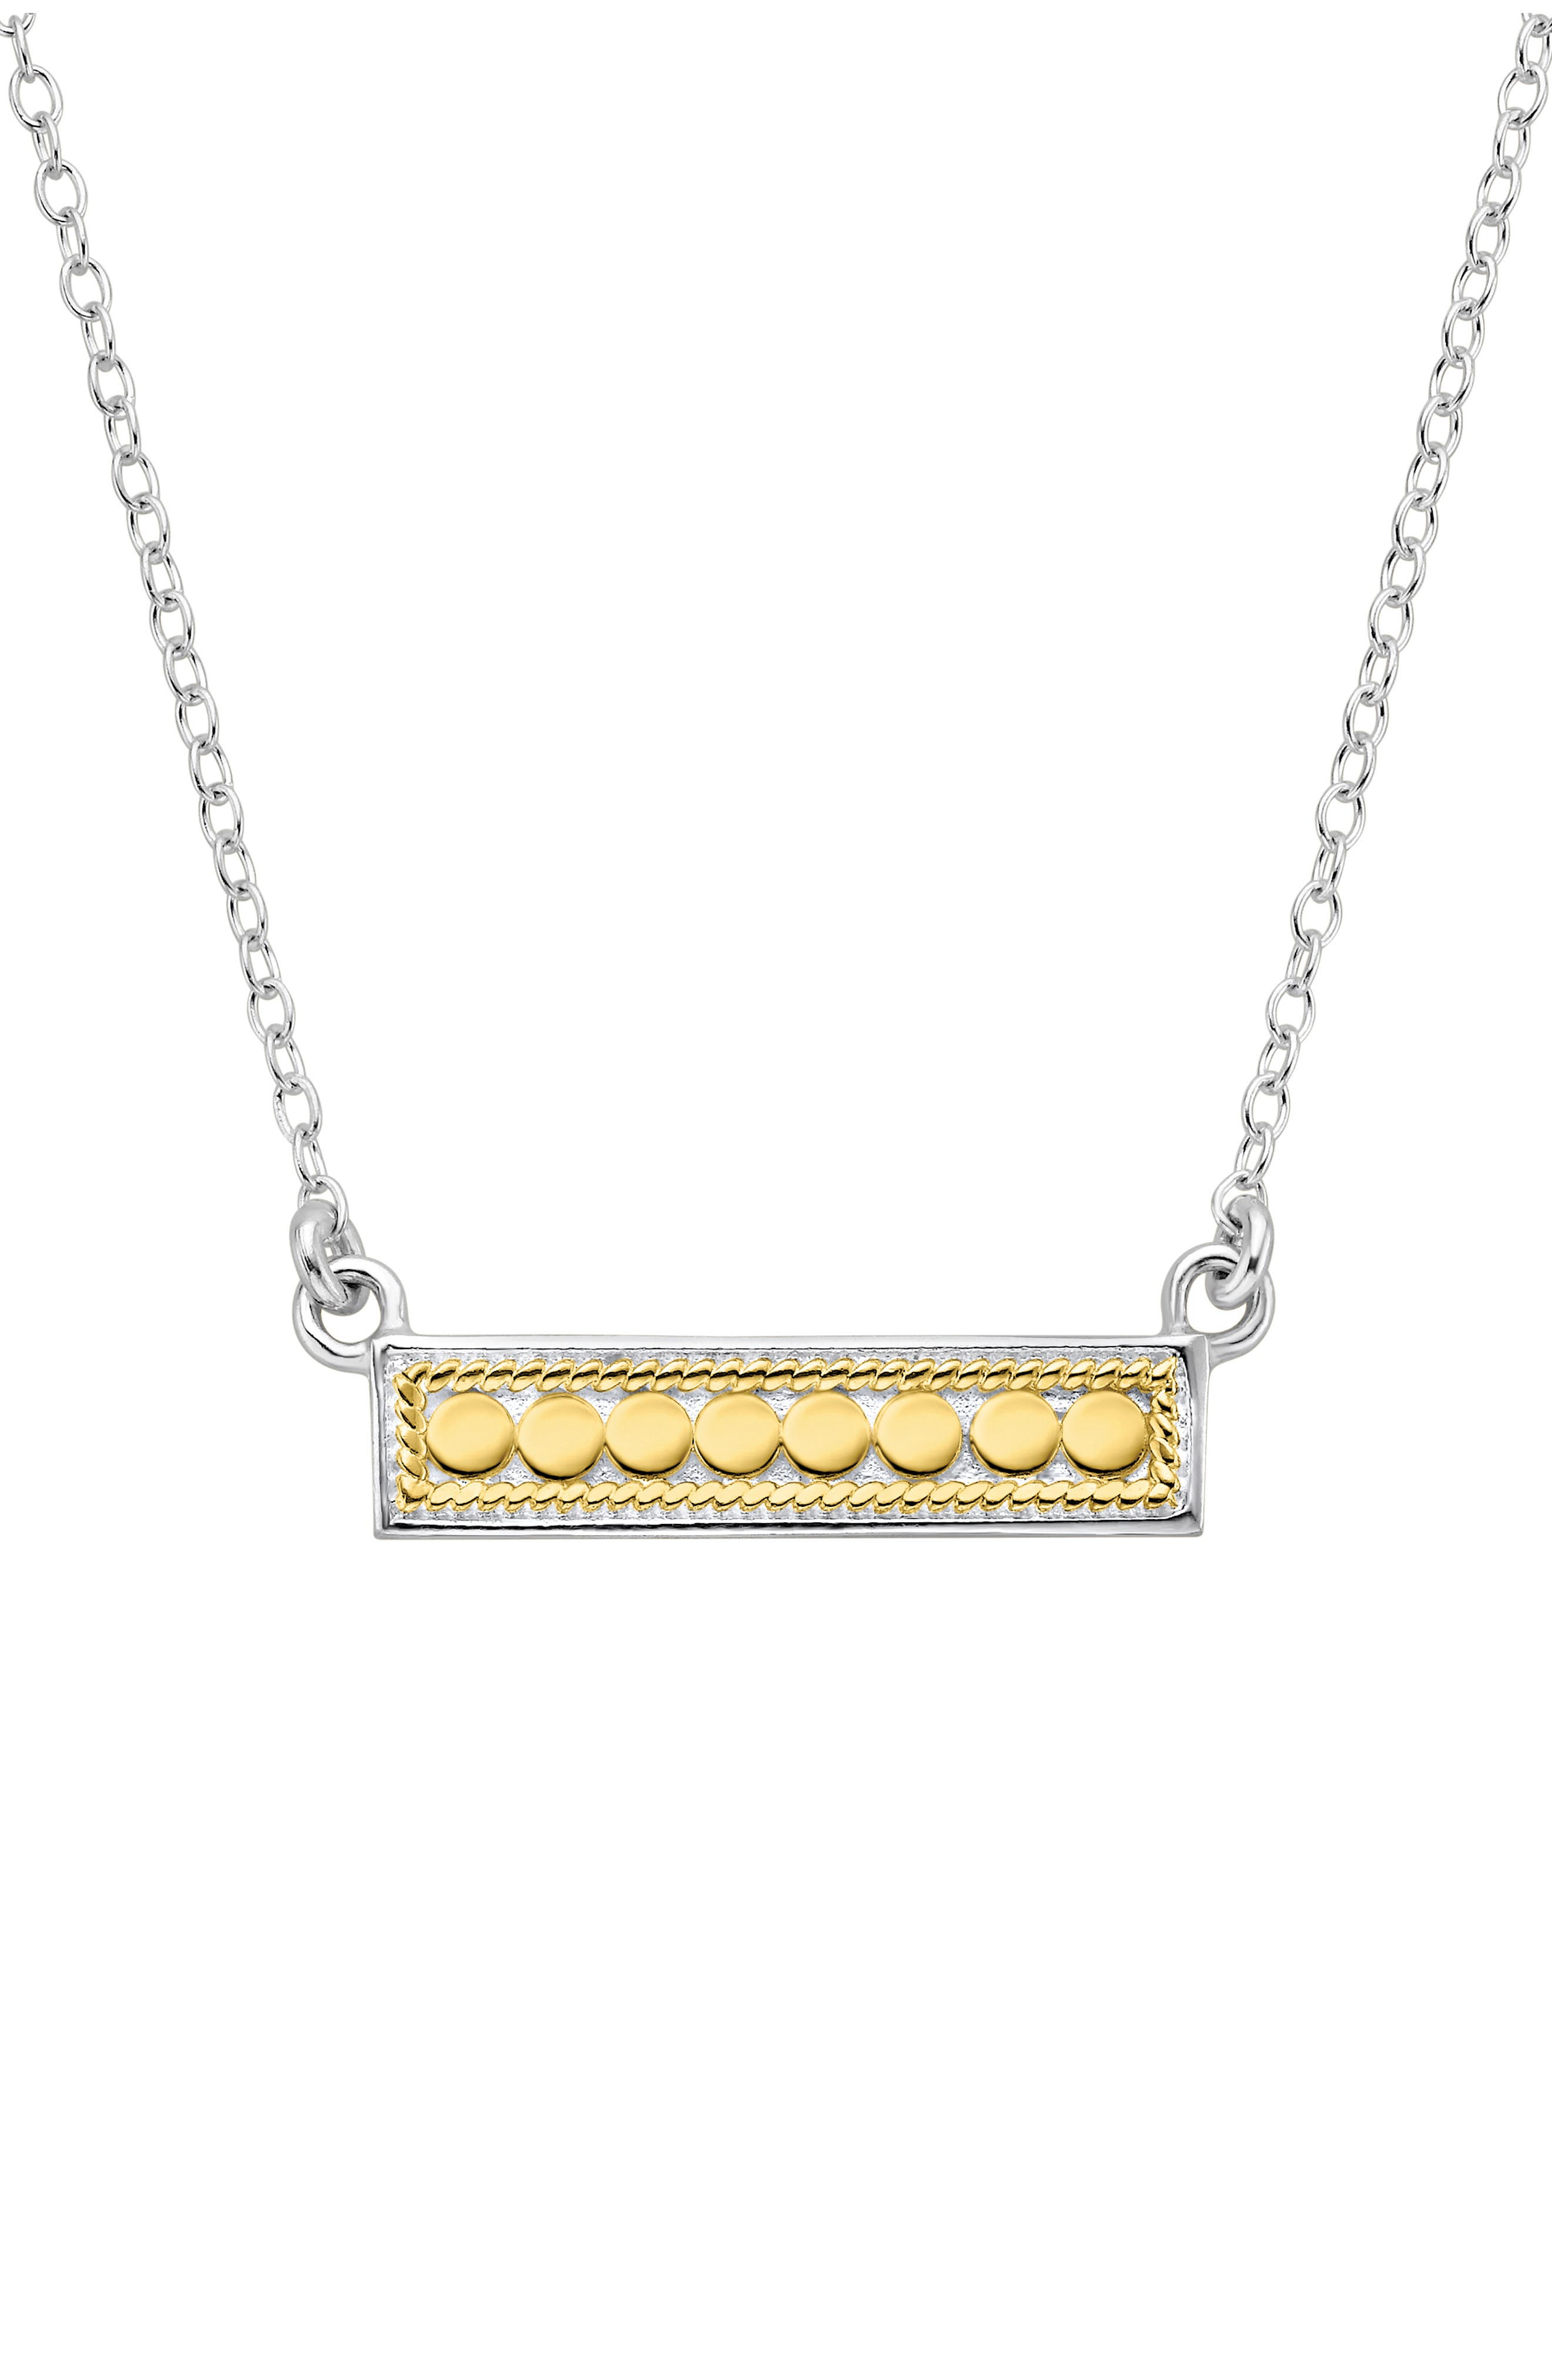 ANNA BECK Reversible Bar Necklace, Main, color, GOLD/ SILVER